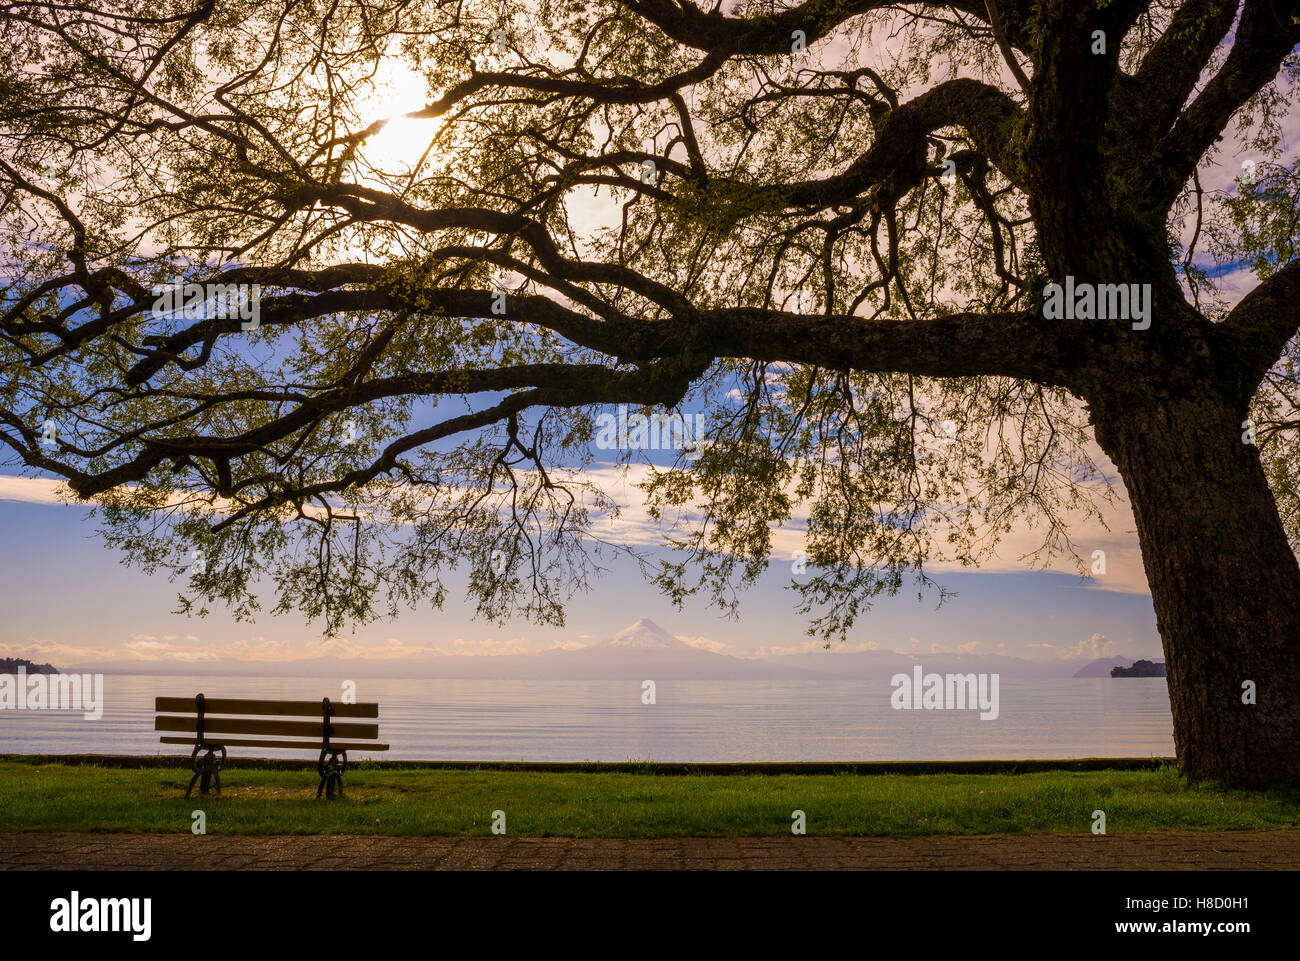 Tree and bench in front of the volcan osorno, Chile - Stock Image